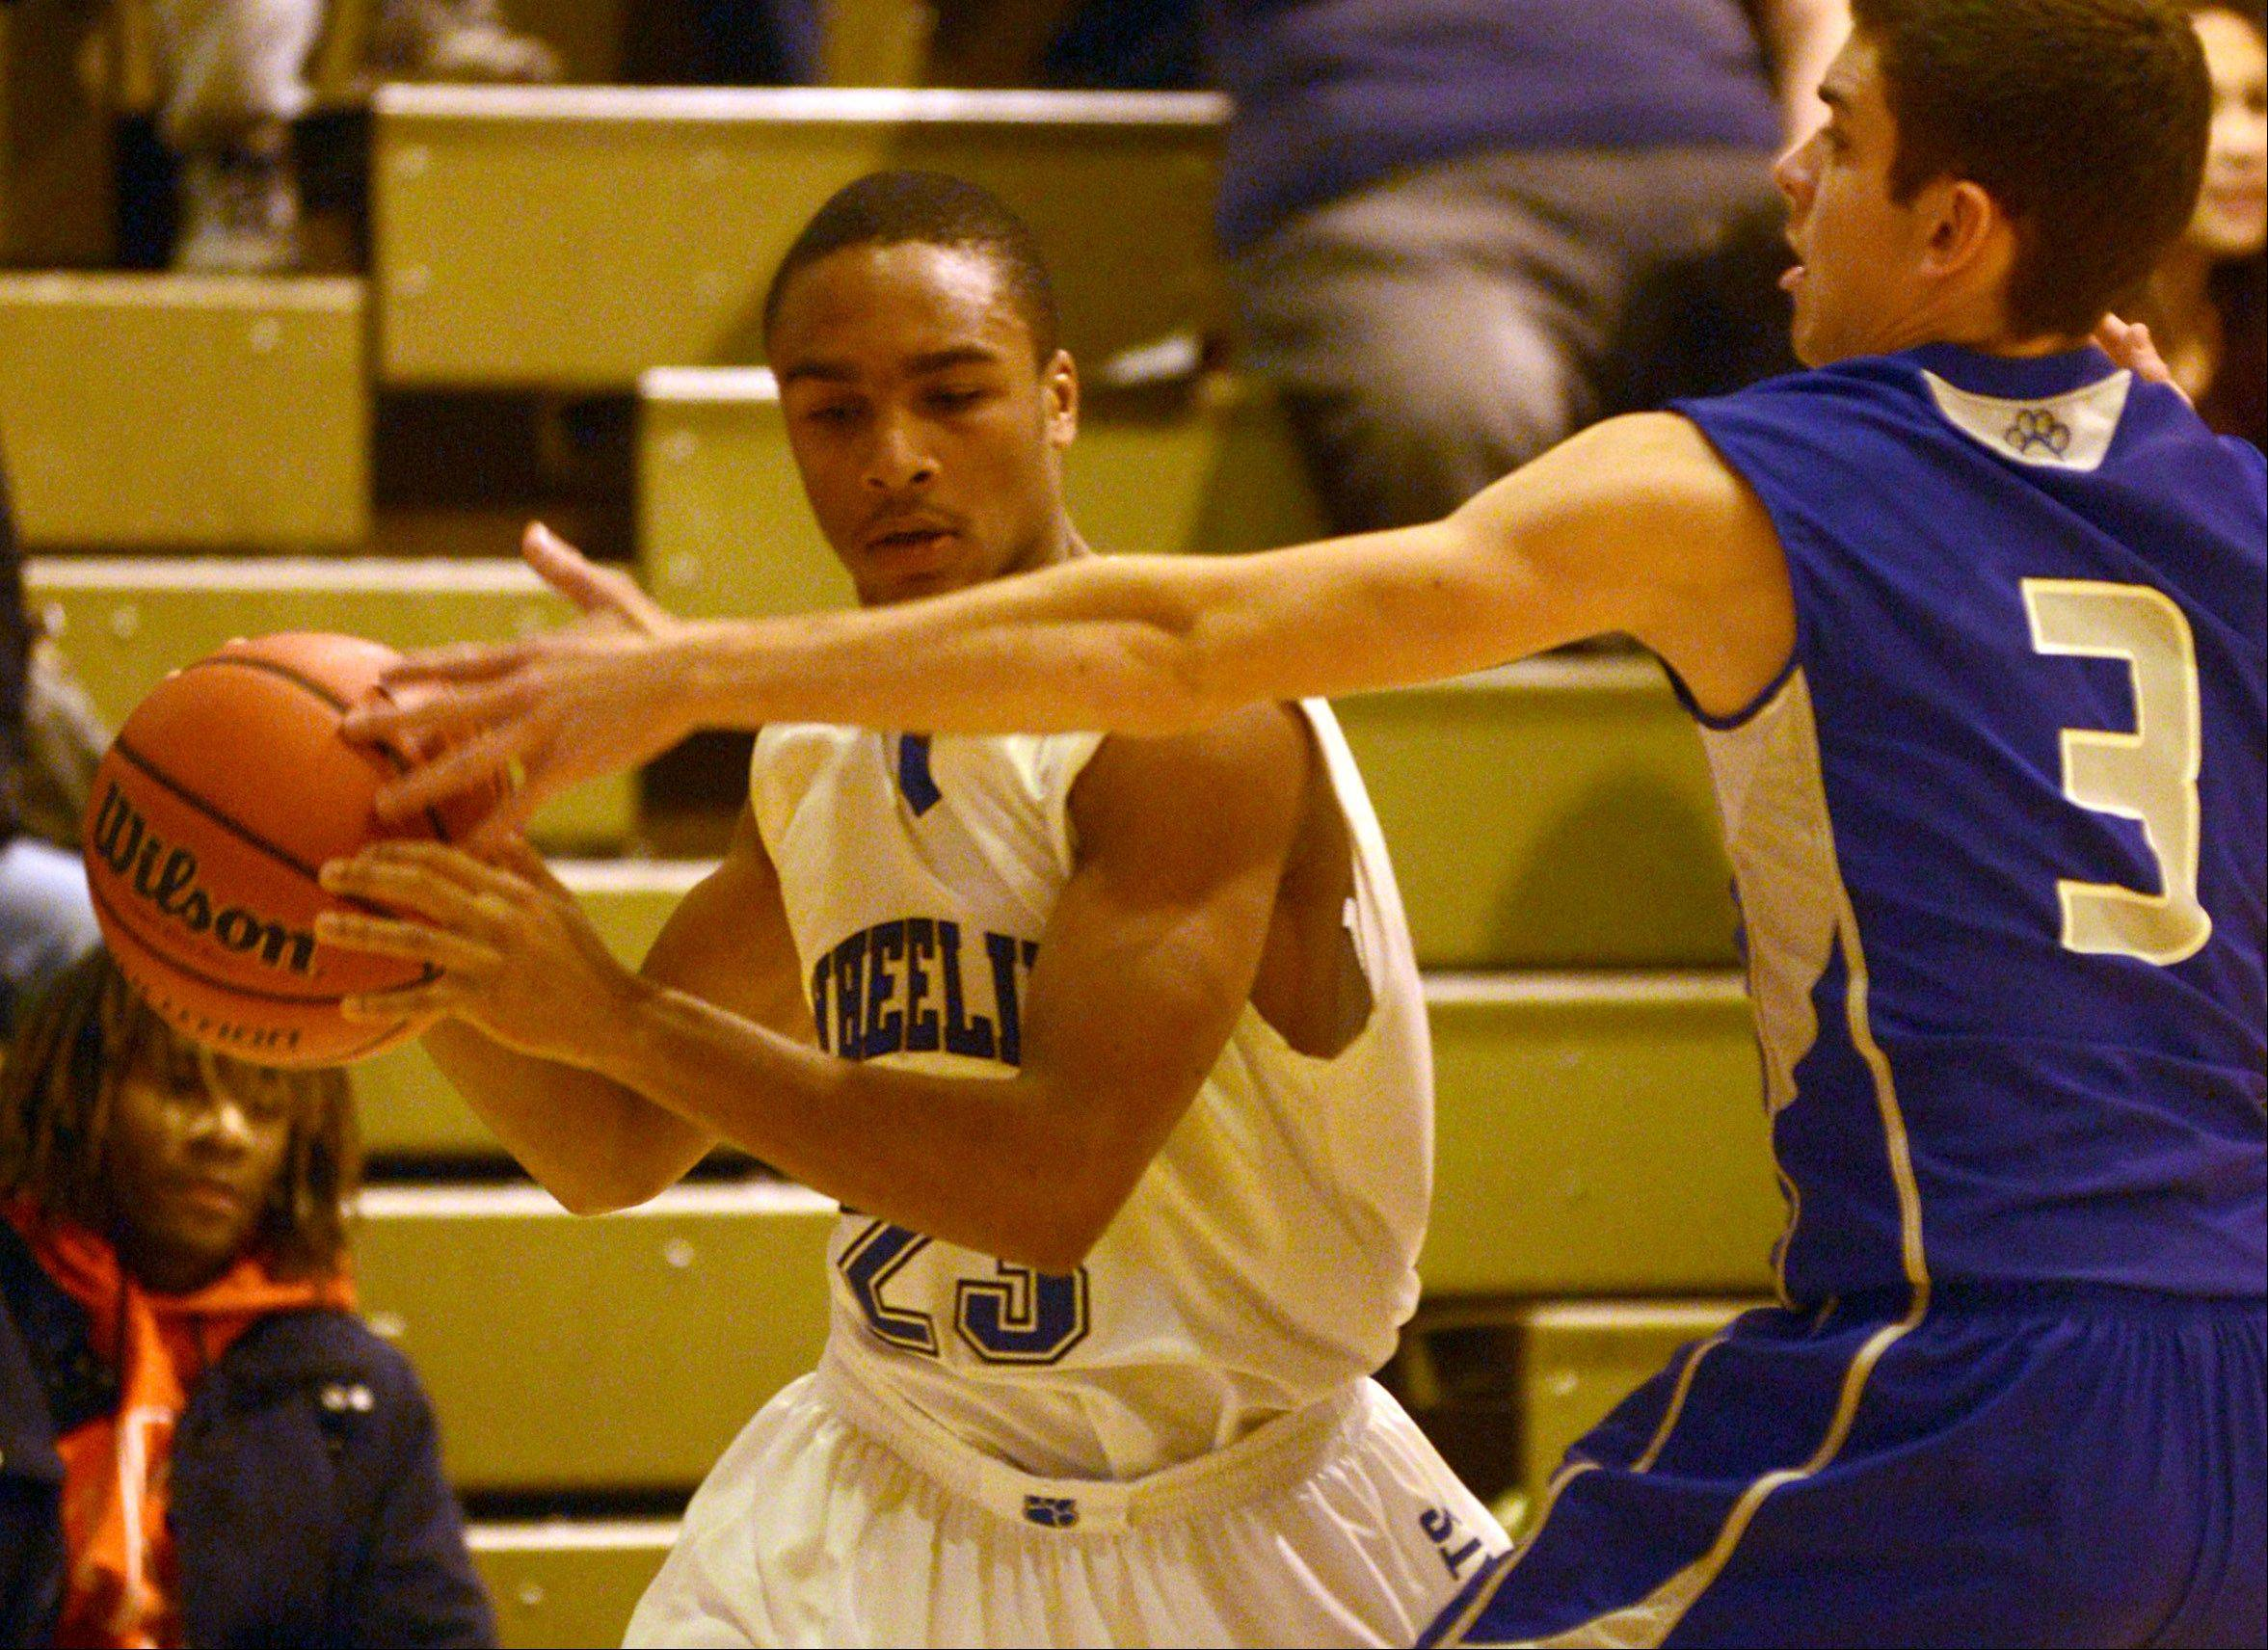 Images: Wheeling vs. Vernon Hills boys basketball